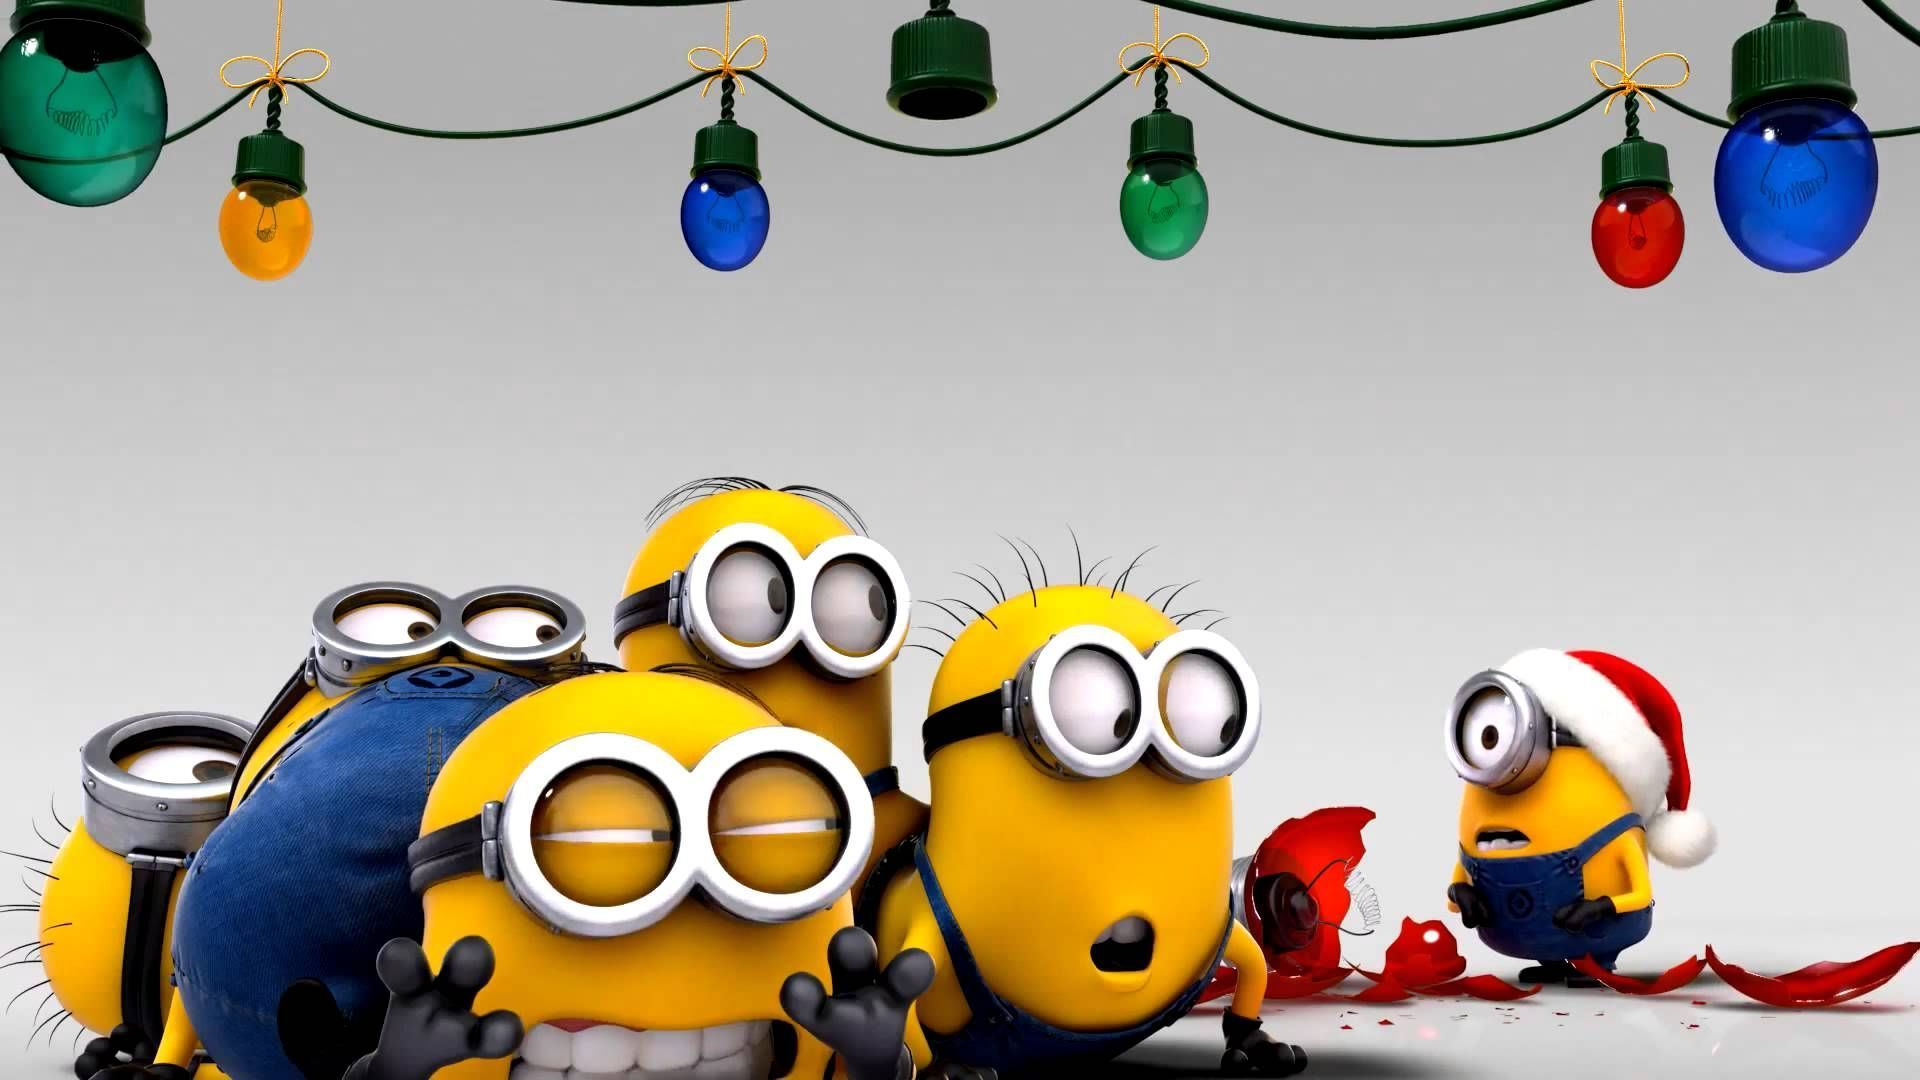 Christmas Minions Wallpapers Group | HD Wallpapers | Pinterest ...